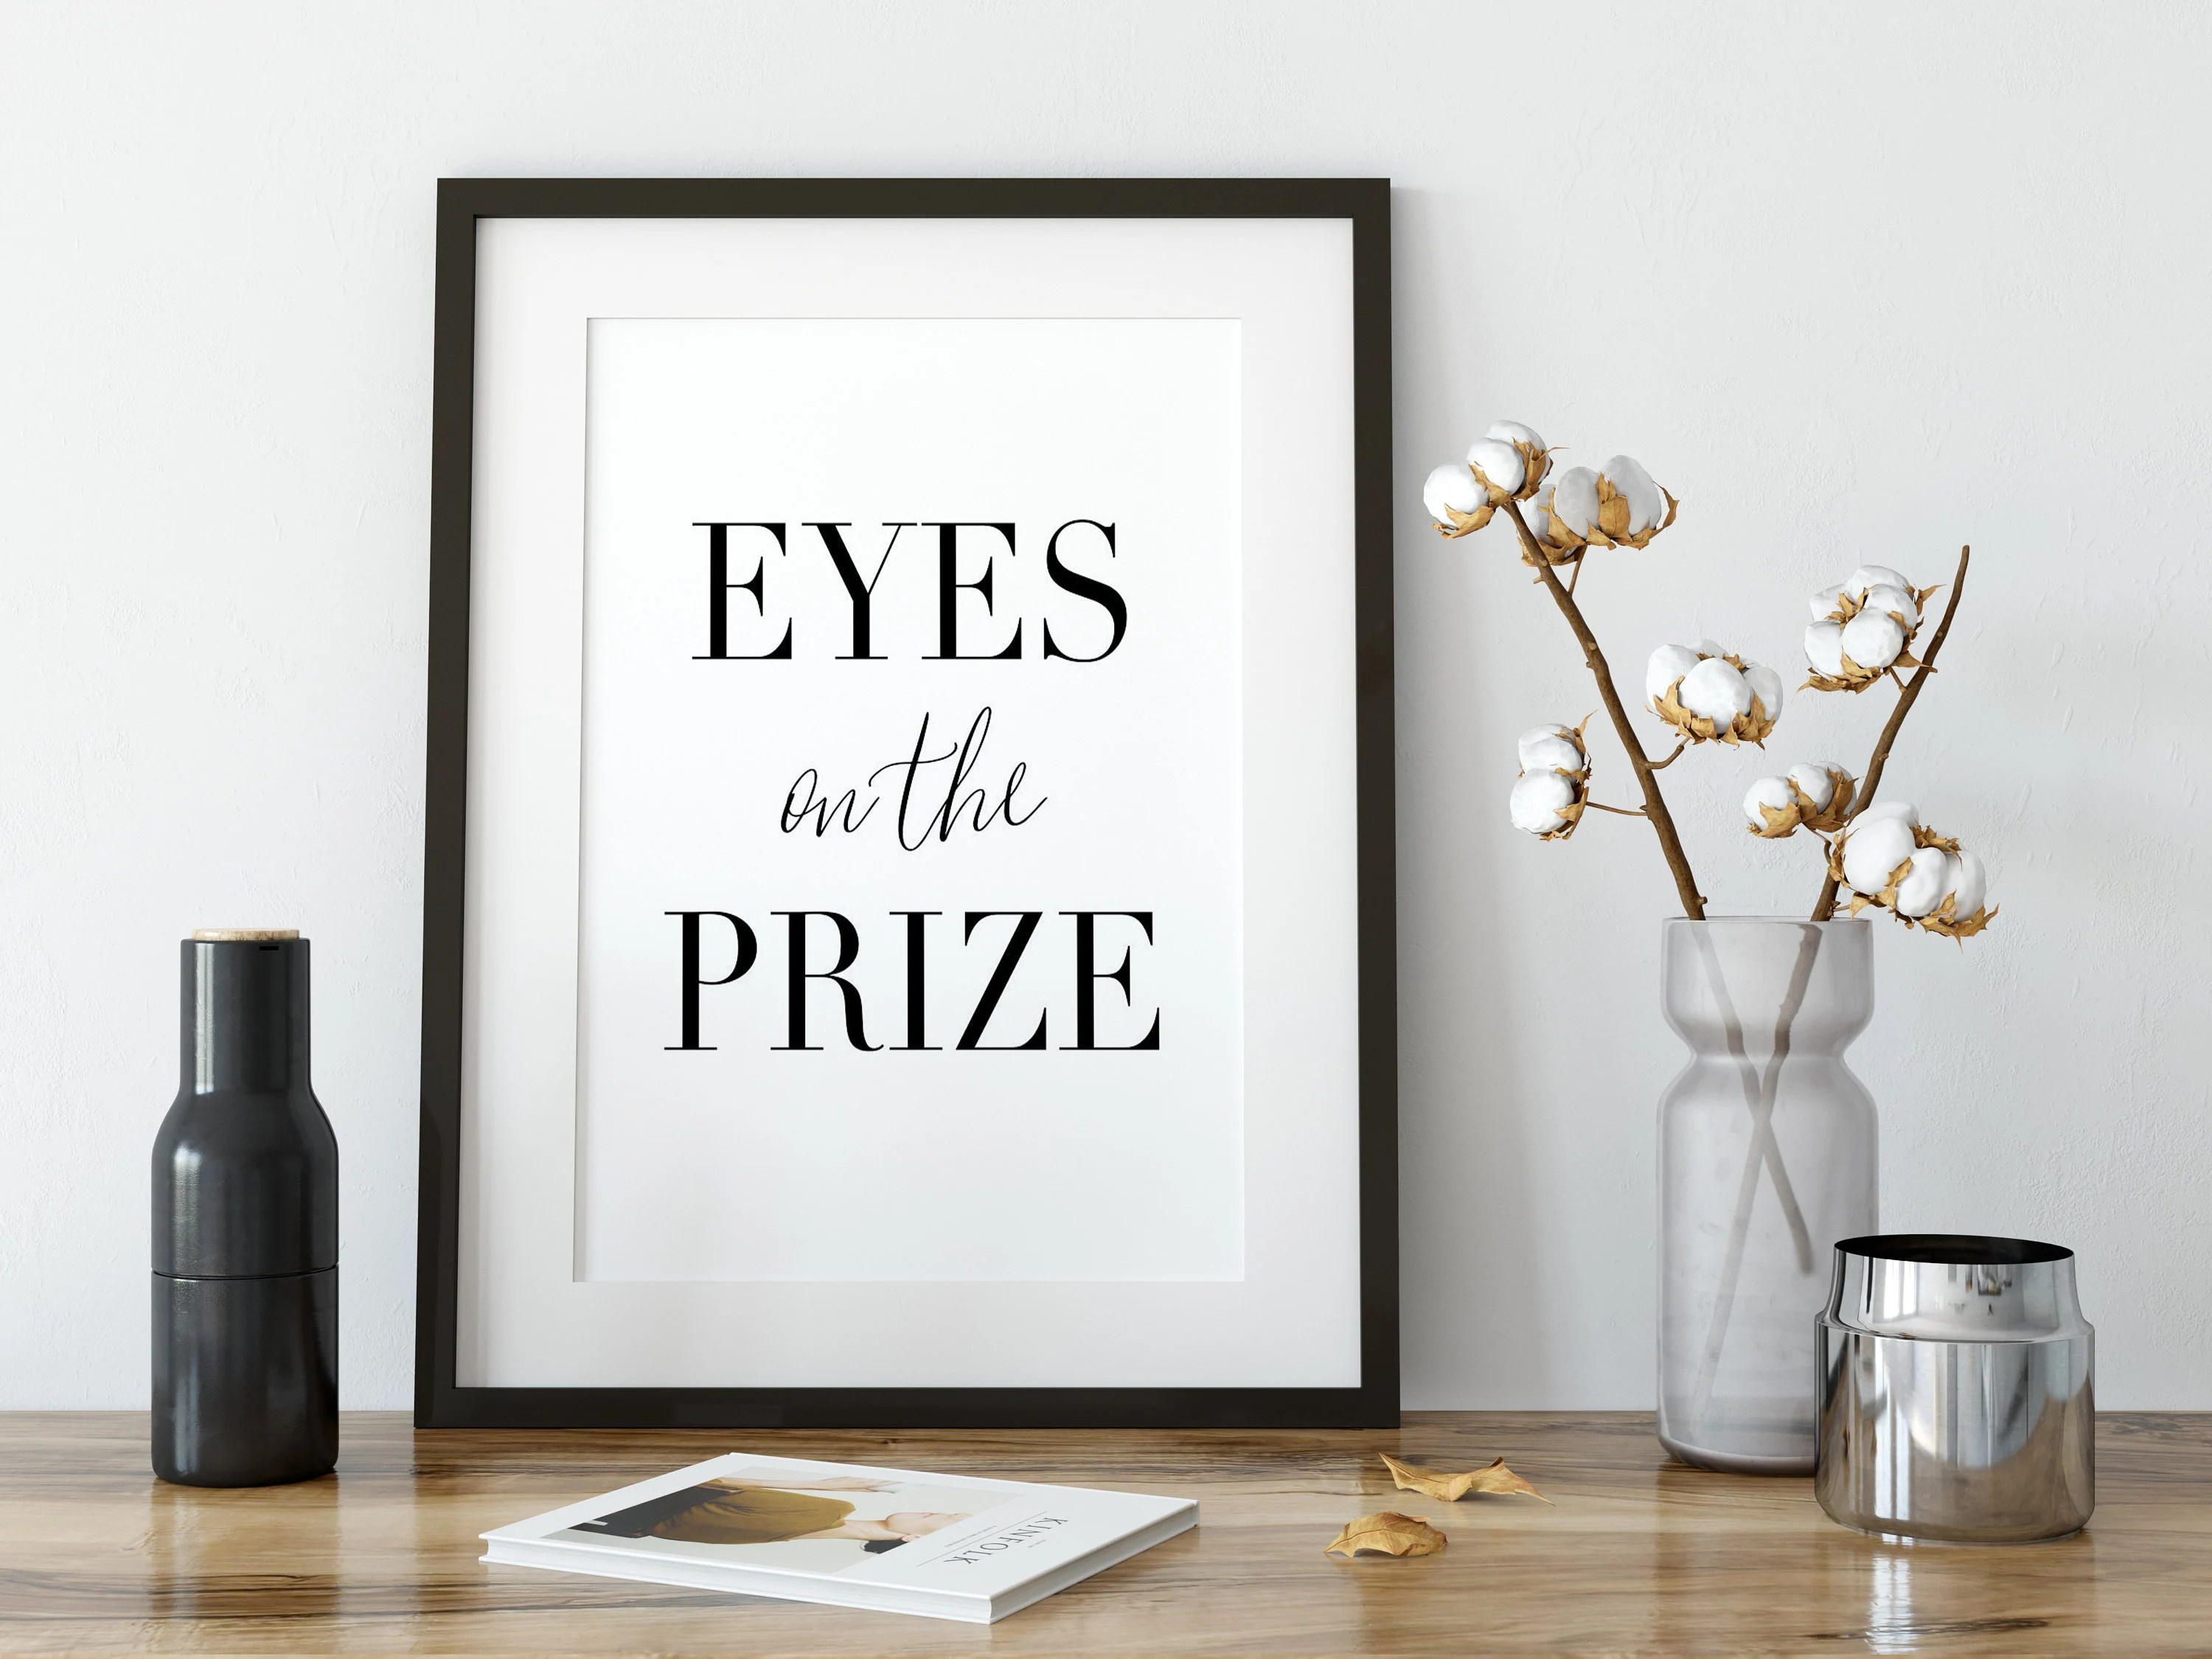 Affiche Scandinave Home Eyes On The Prize Prints Wall Art Signs Posters Home Decor Affiche Scandinave Art Prints Printable Digital Art Motivational Quotes